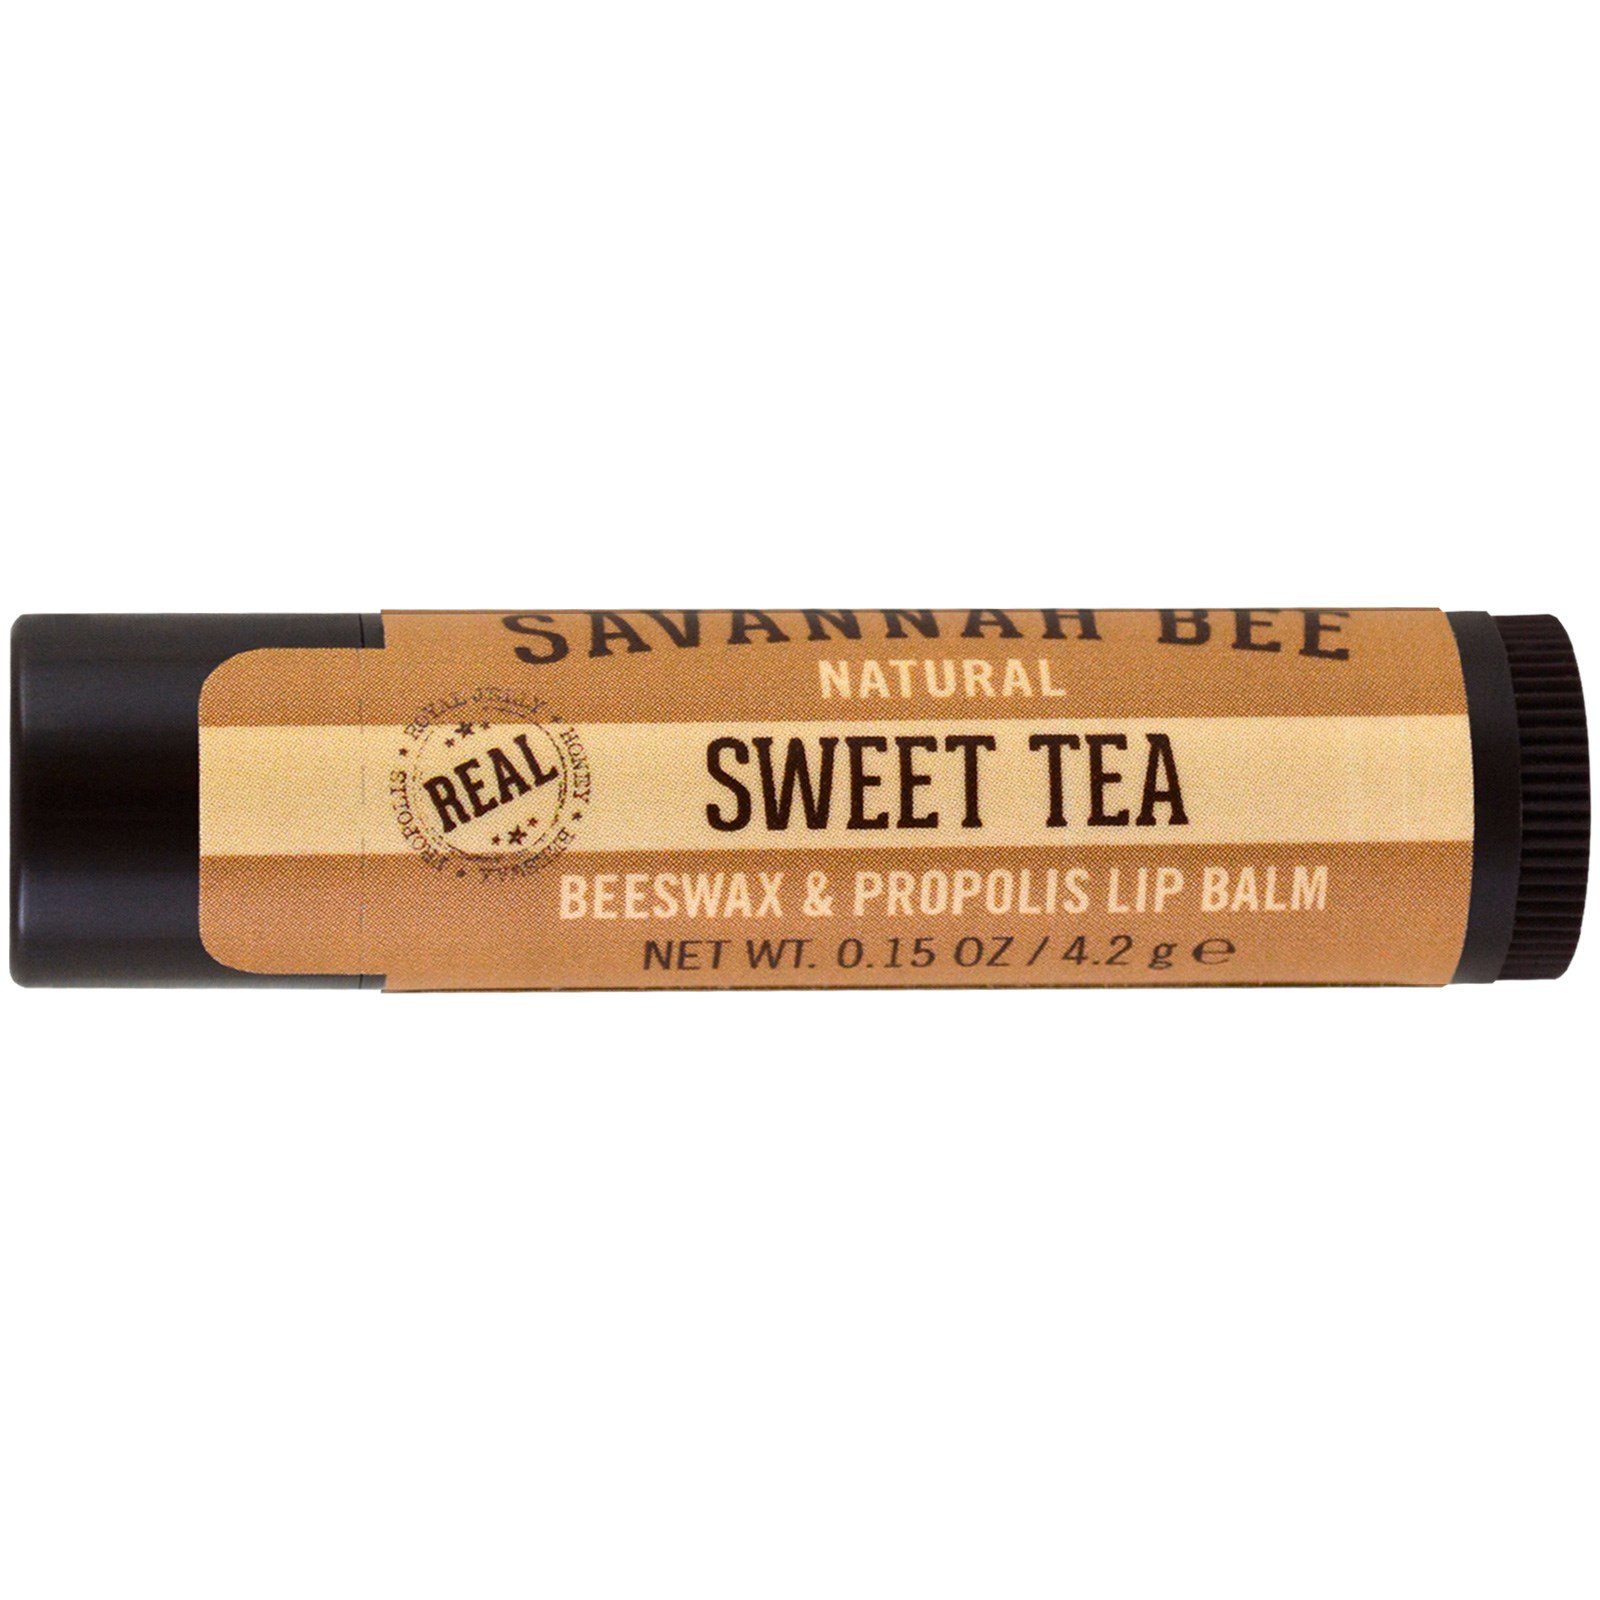 Savannah Bee - Natural Beeswax & Propolis Lip Balm Sweet Tea - 0.15 oz. (pack of 3) Peter Thomas Roth Anti-Aging Buffing Beads, 8.5 Fluid oz